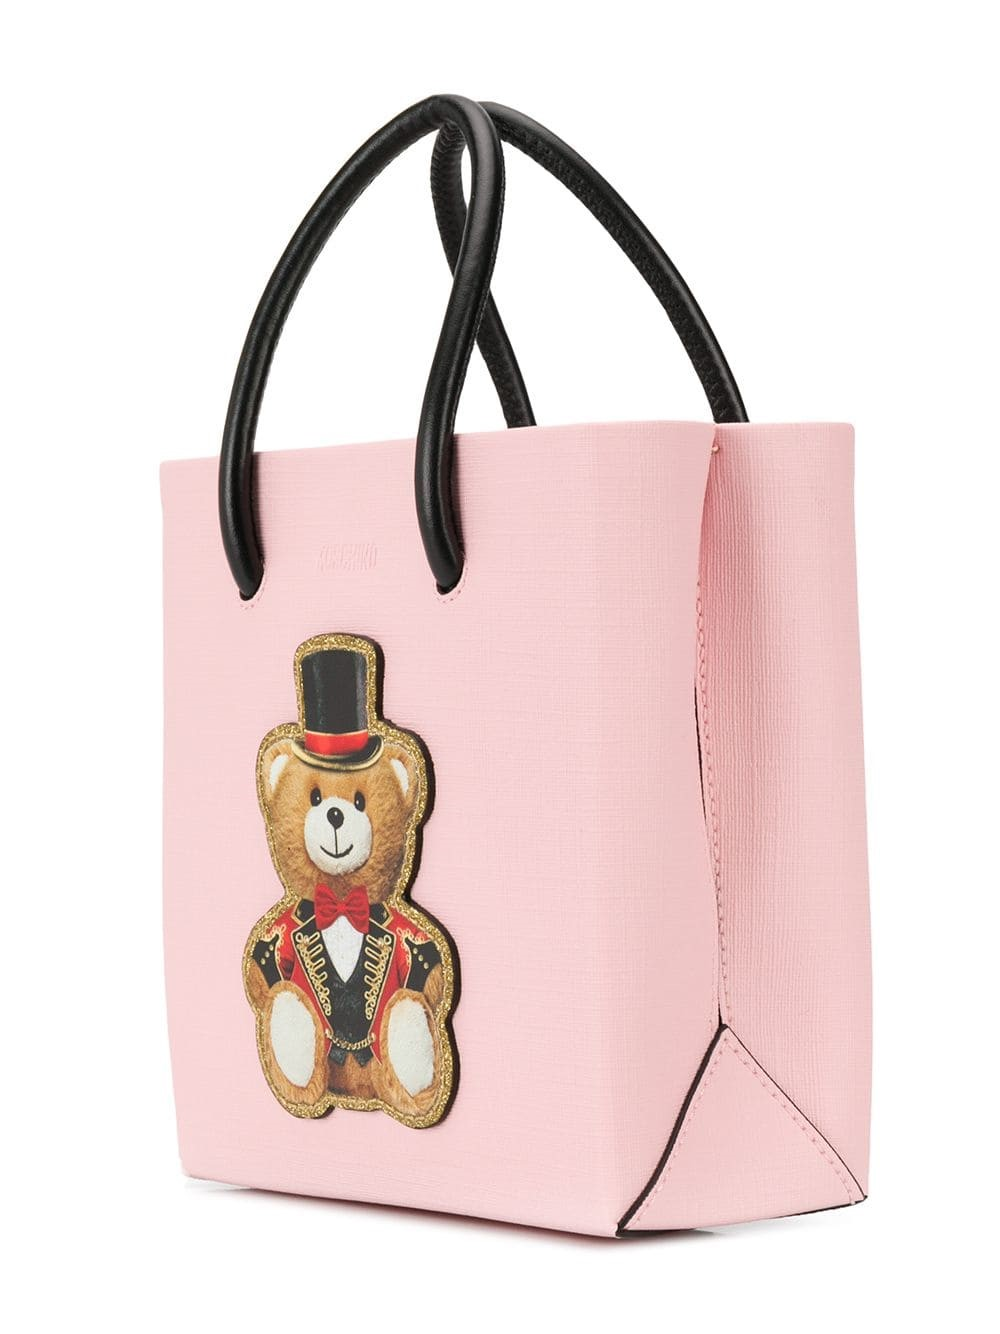 Moschino Teddy Bear Tote Bag Available